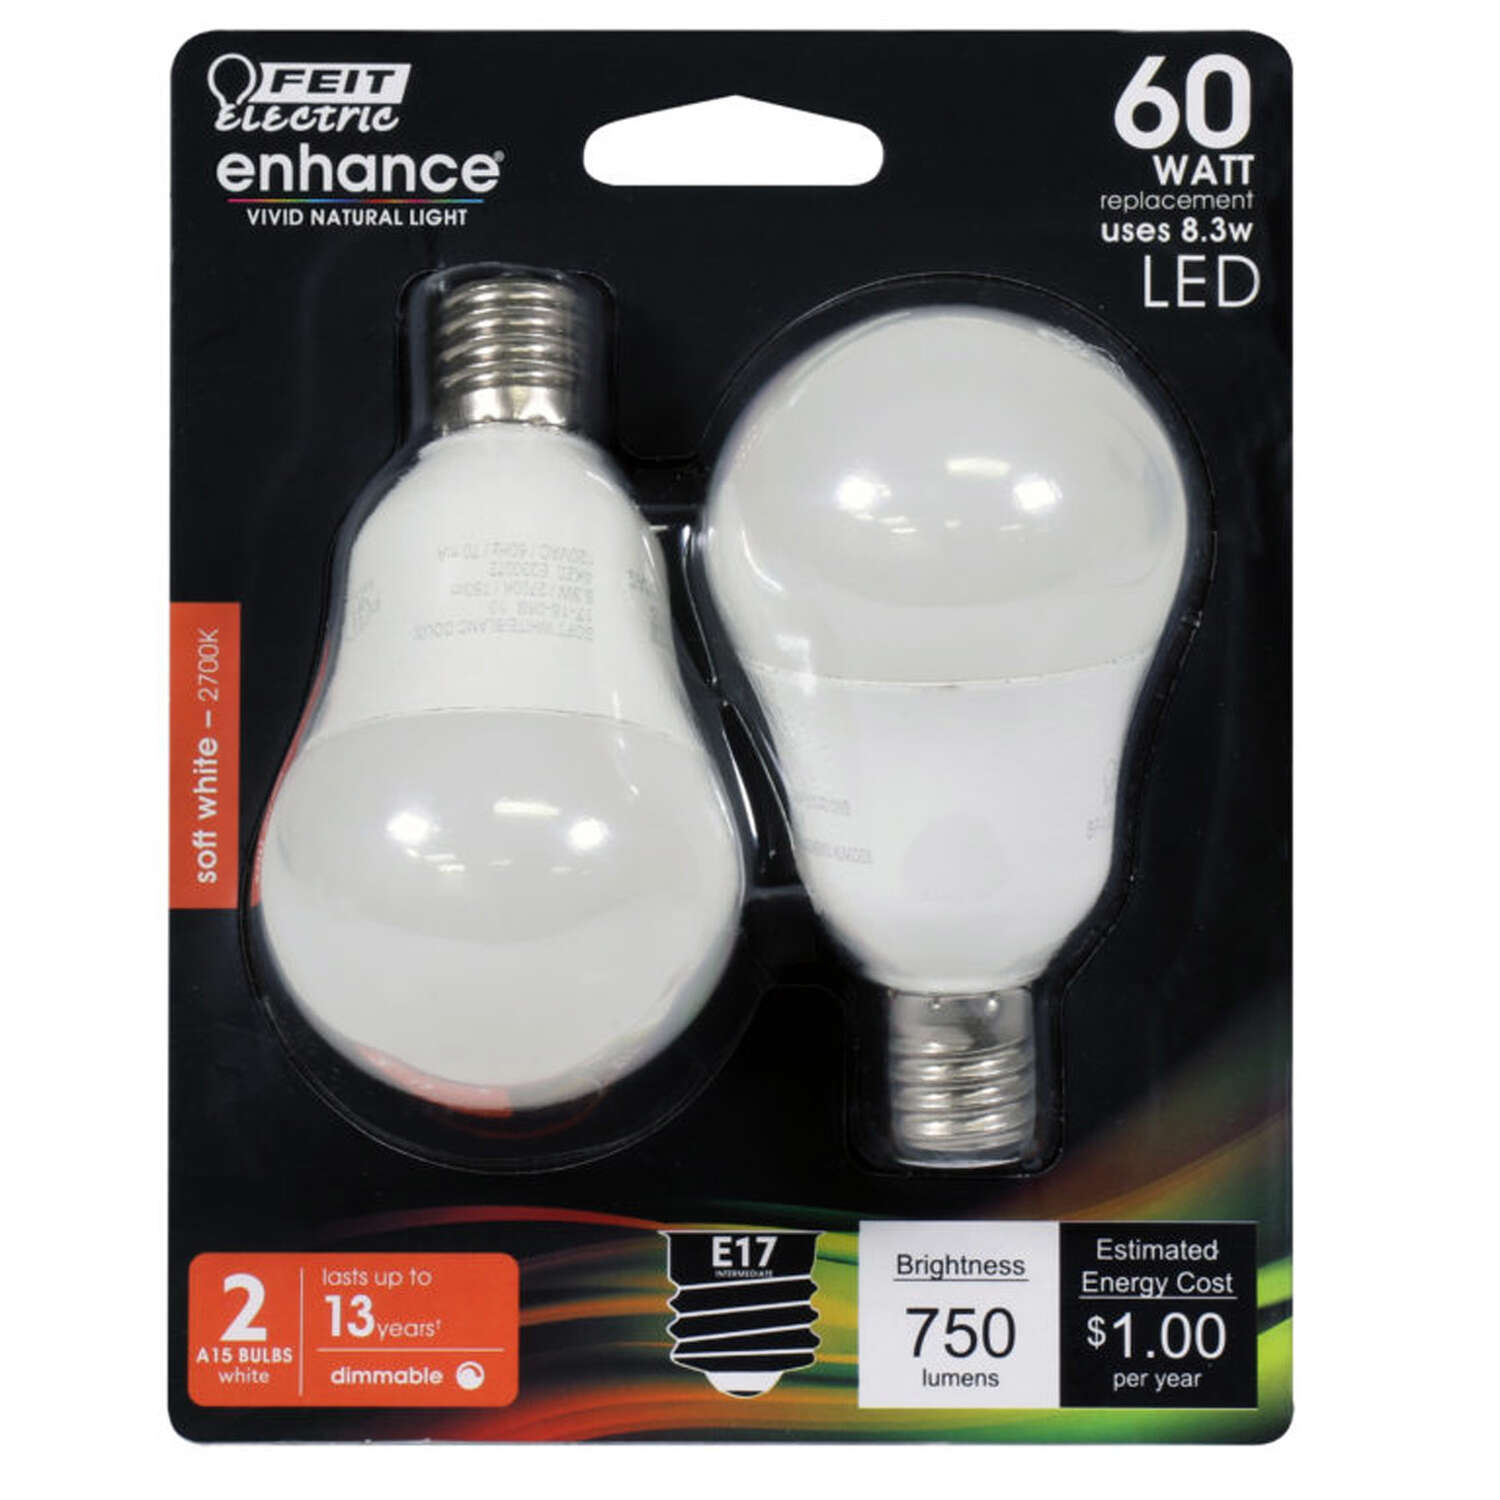 Feit Electric Enhance A15 E17 (Intermediate) LED Bulb Soft White 60 Watt Equivalence 2 pk